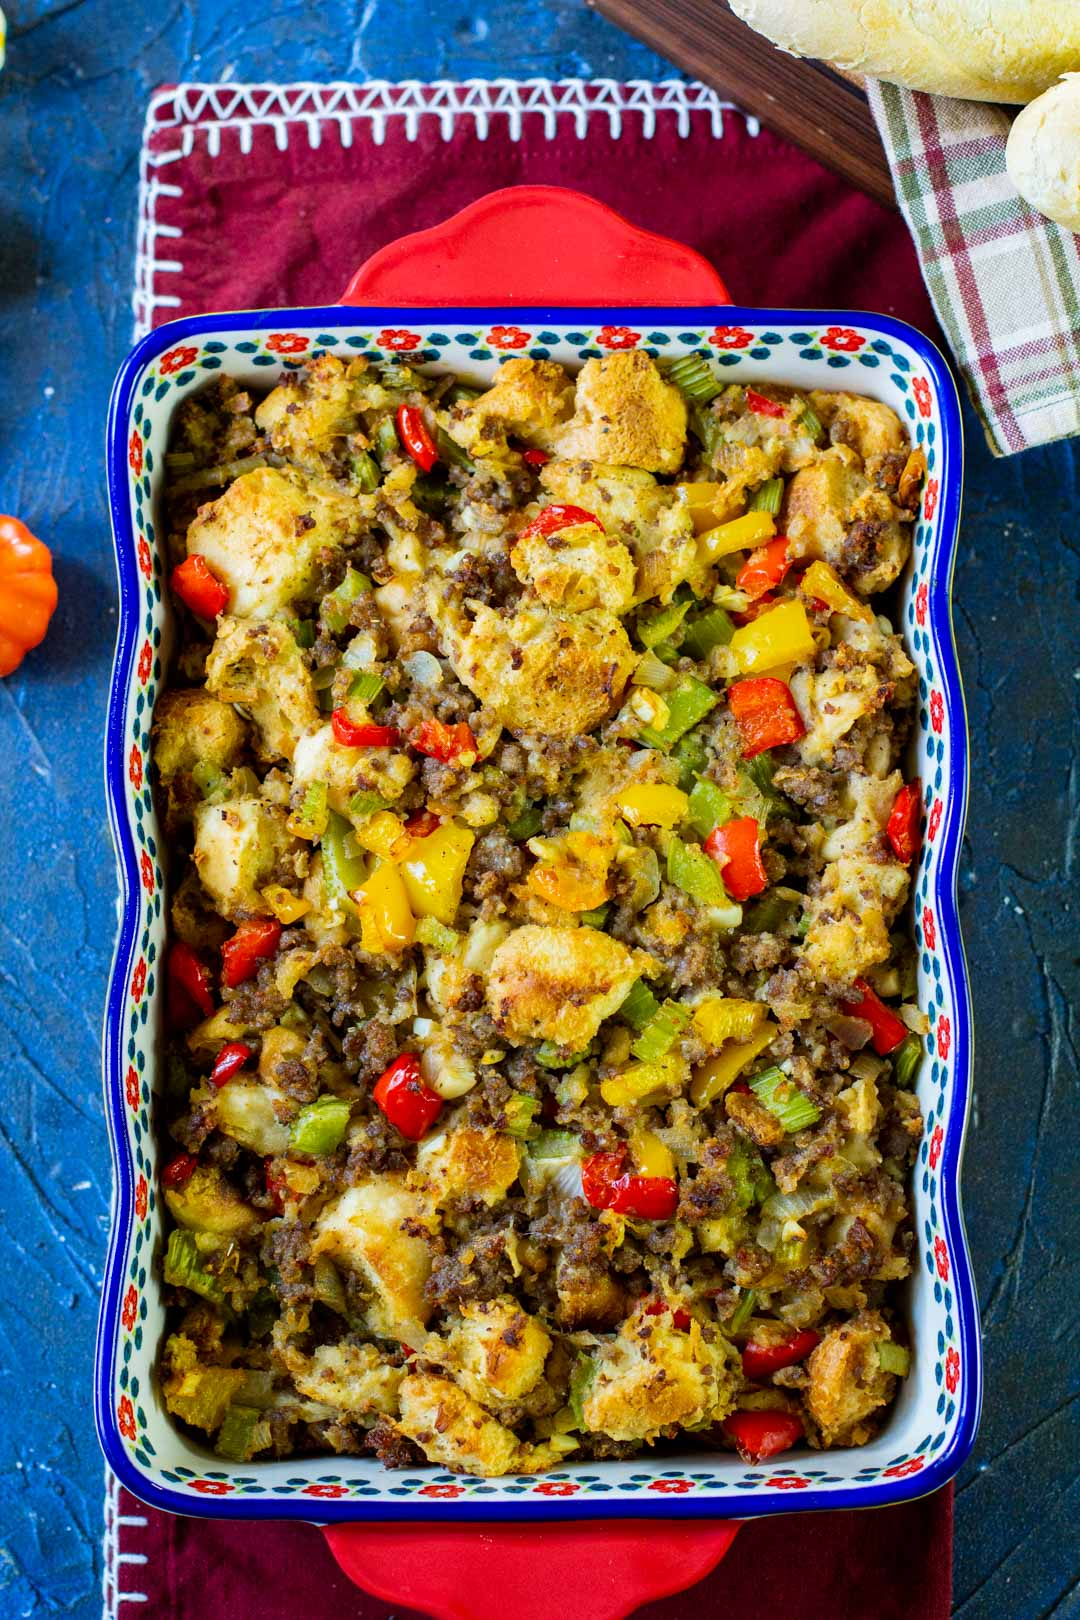 sausage stuffing in a blue and red casserole dish